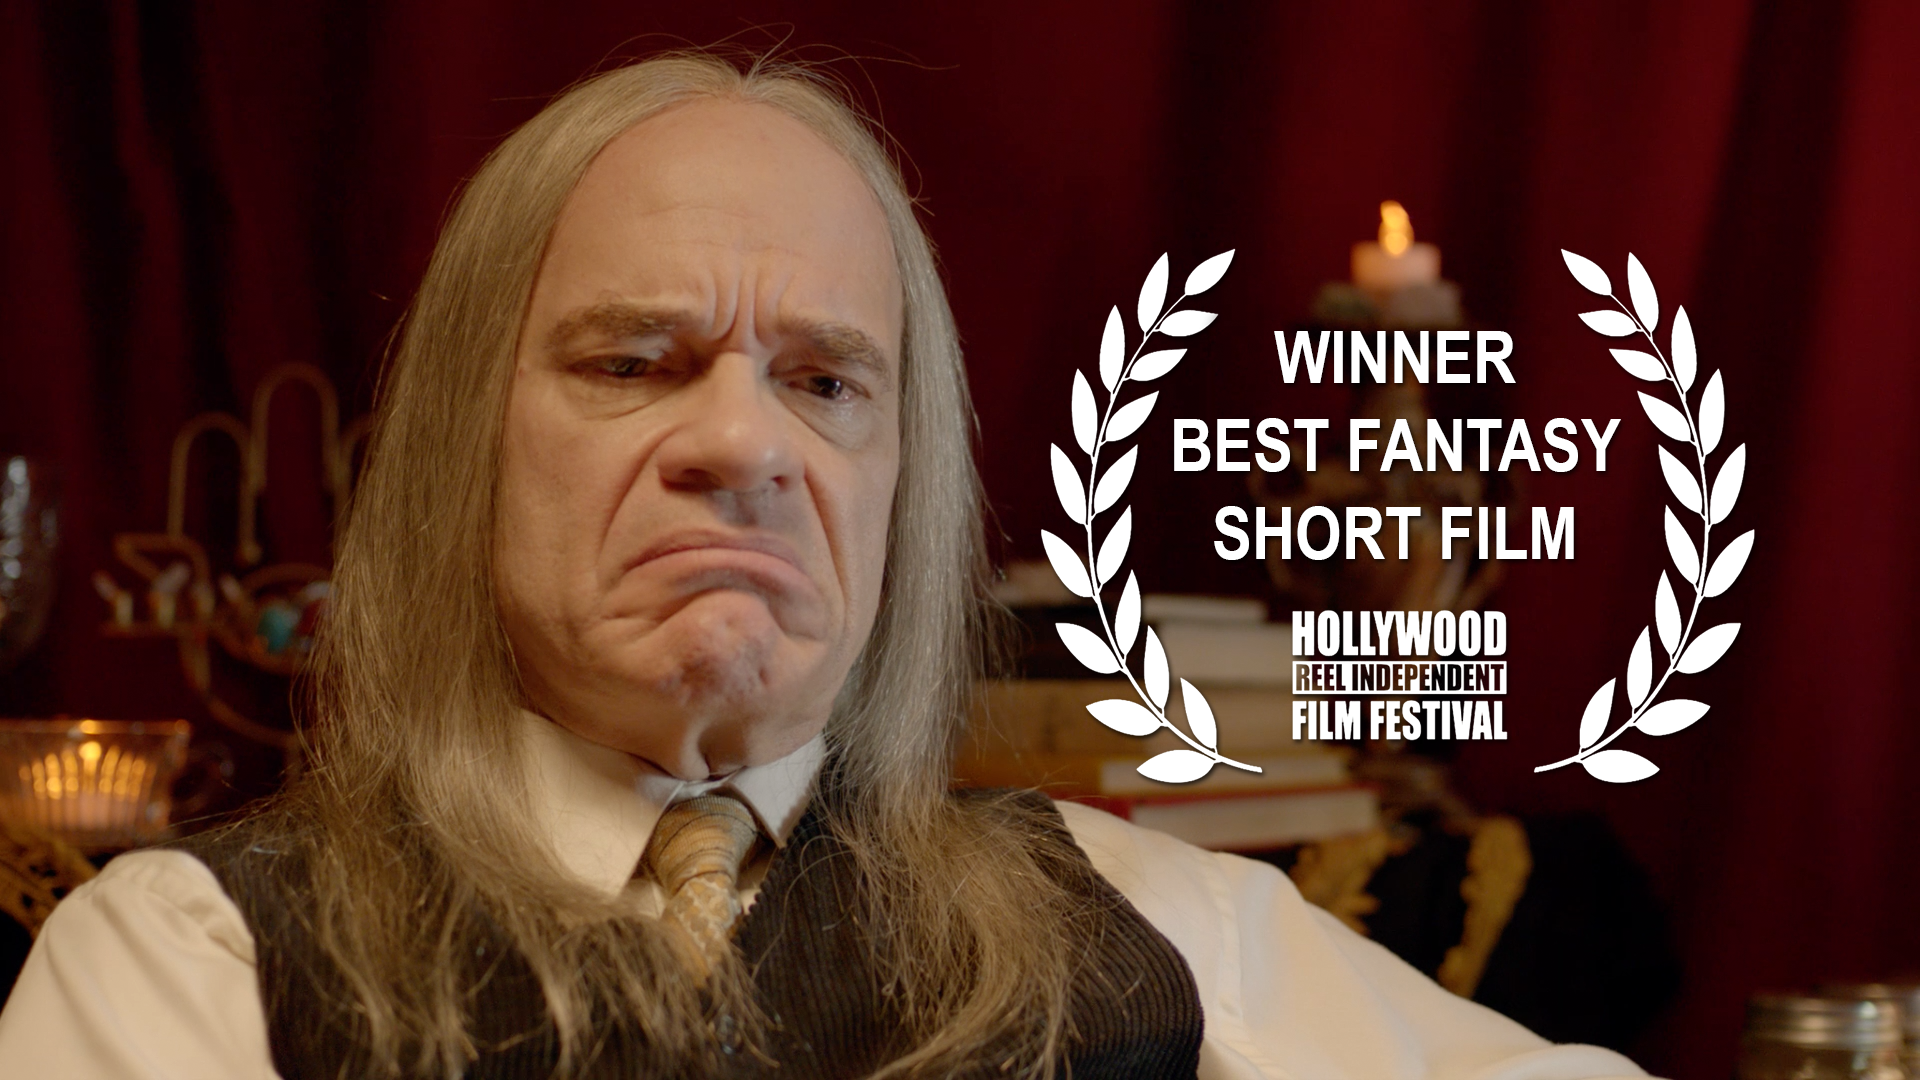 """Carghost had it's world premiere and won """"Best Fantasy Short"""" and the """"People's Choice Award for Best Short Film"""" at the Hollywood Reel Independent Film Festival on February 17th, 2017."""